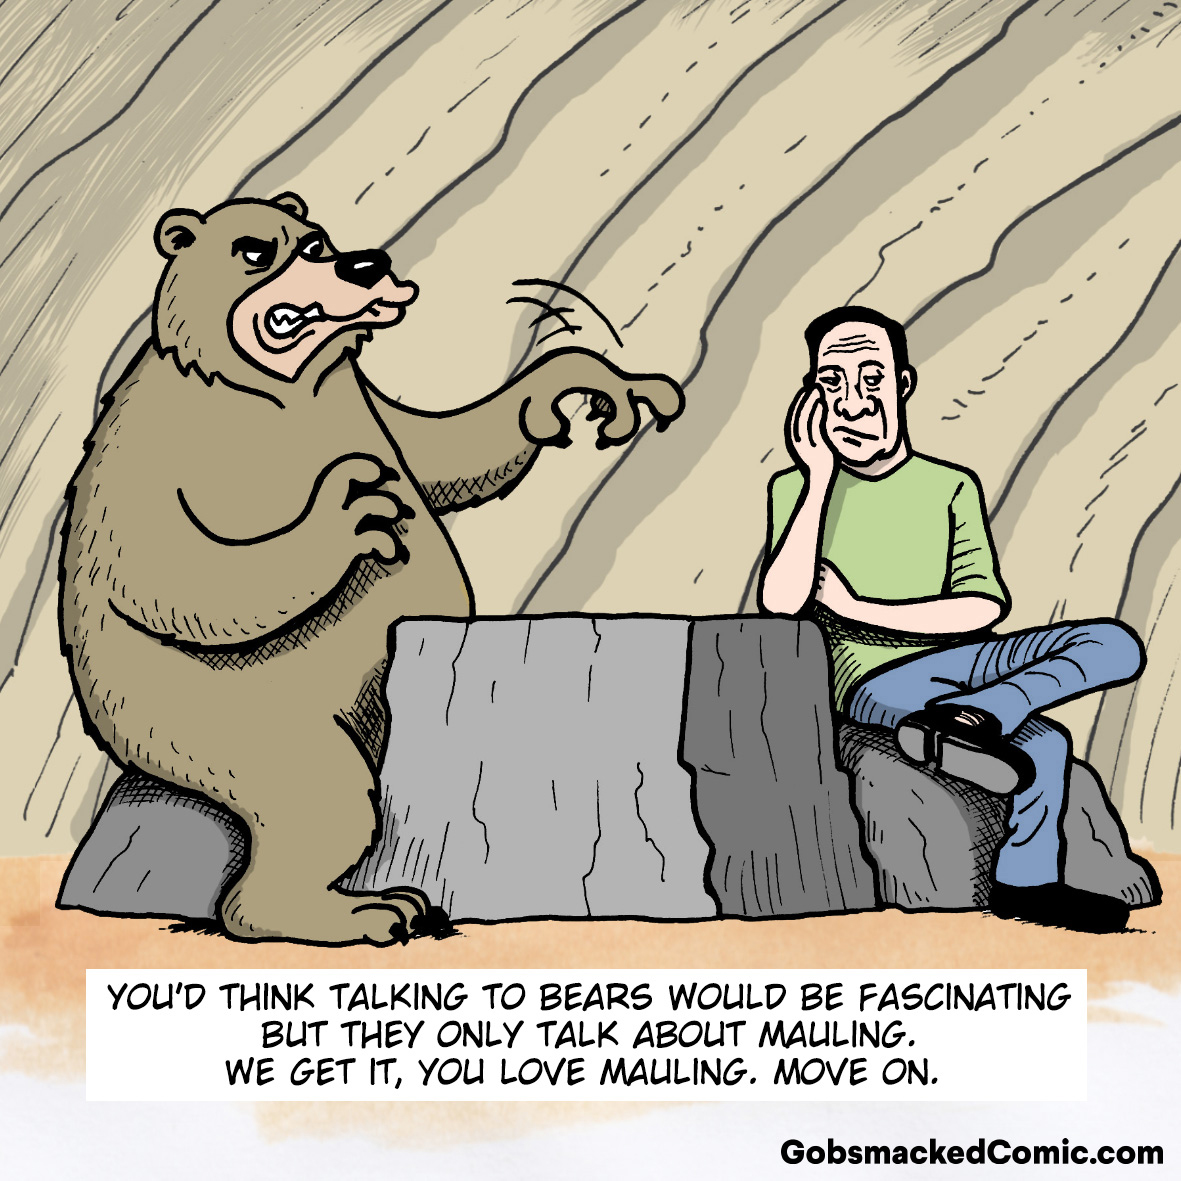 What If Bears Talked?